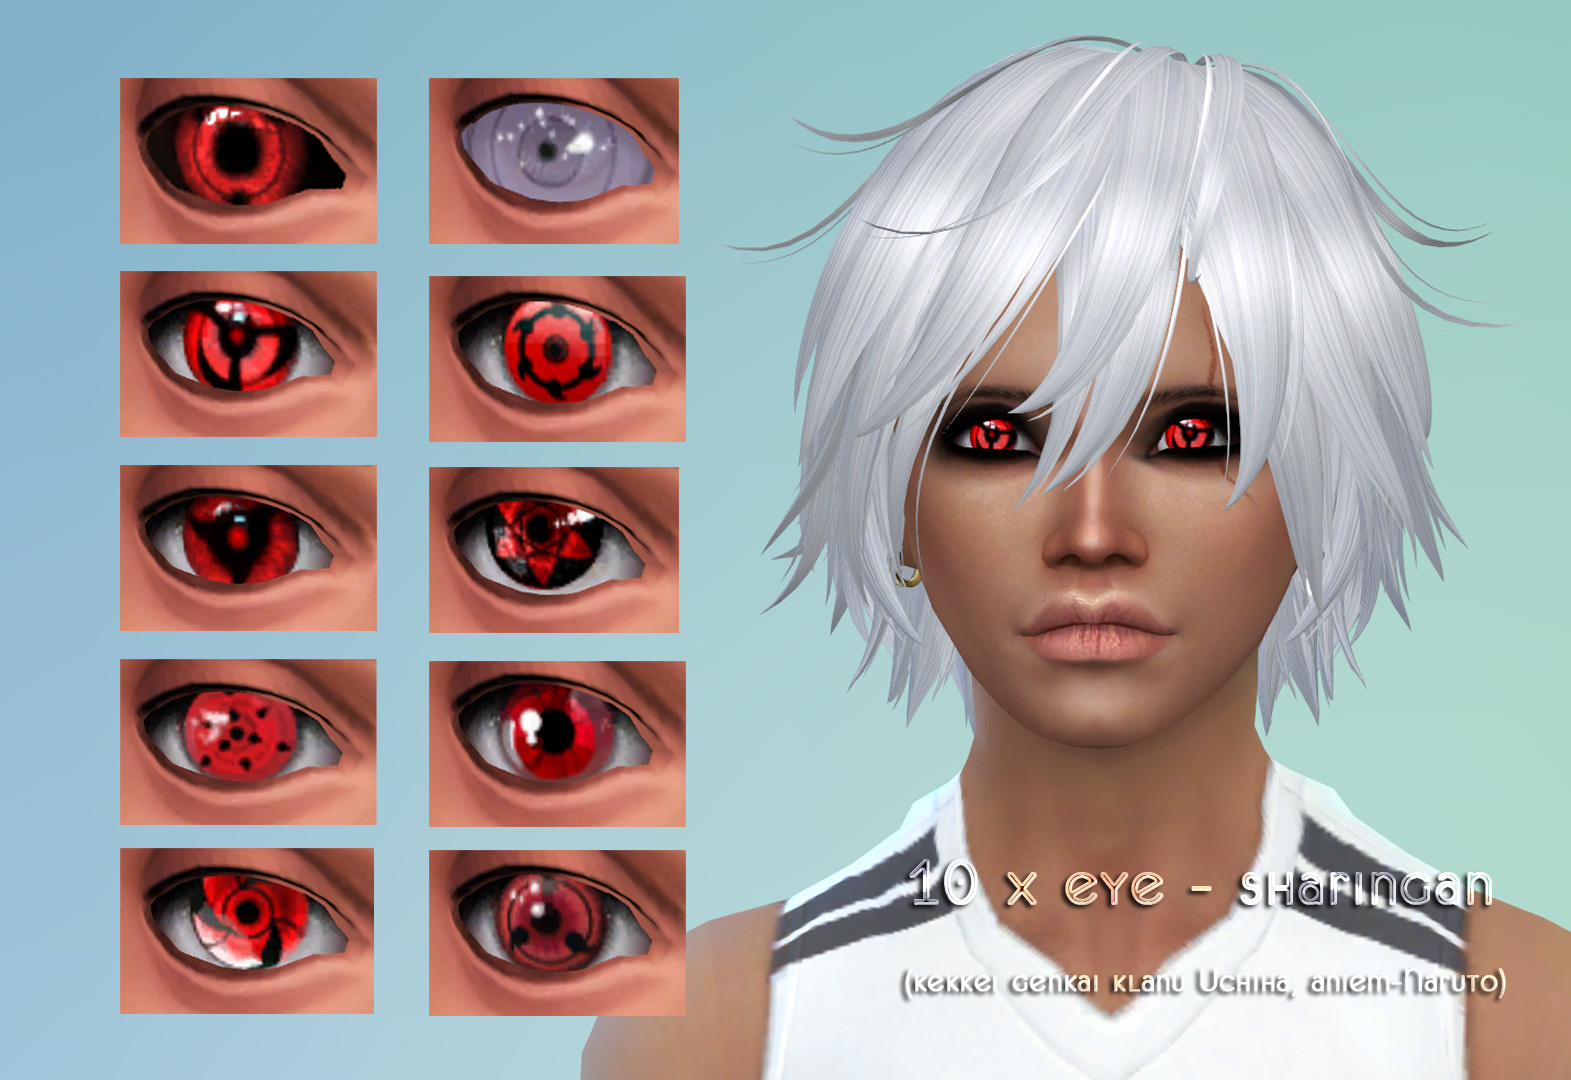 Akaicz_eye sharingan